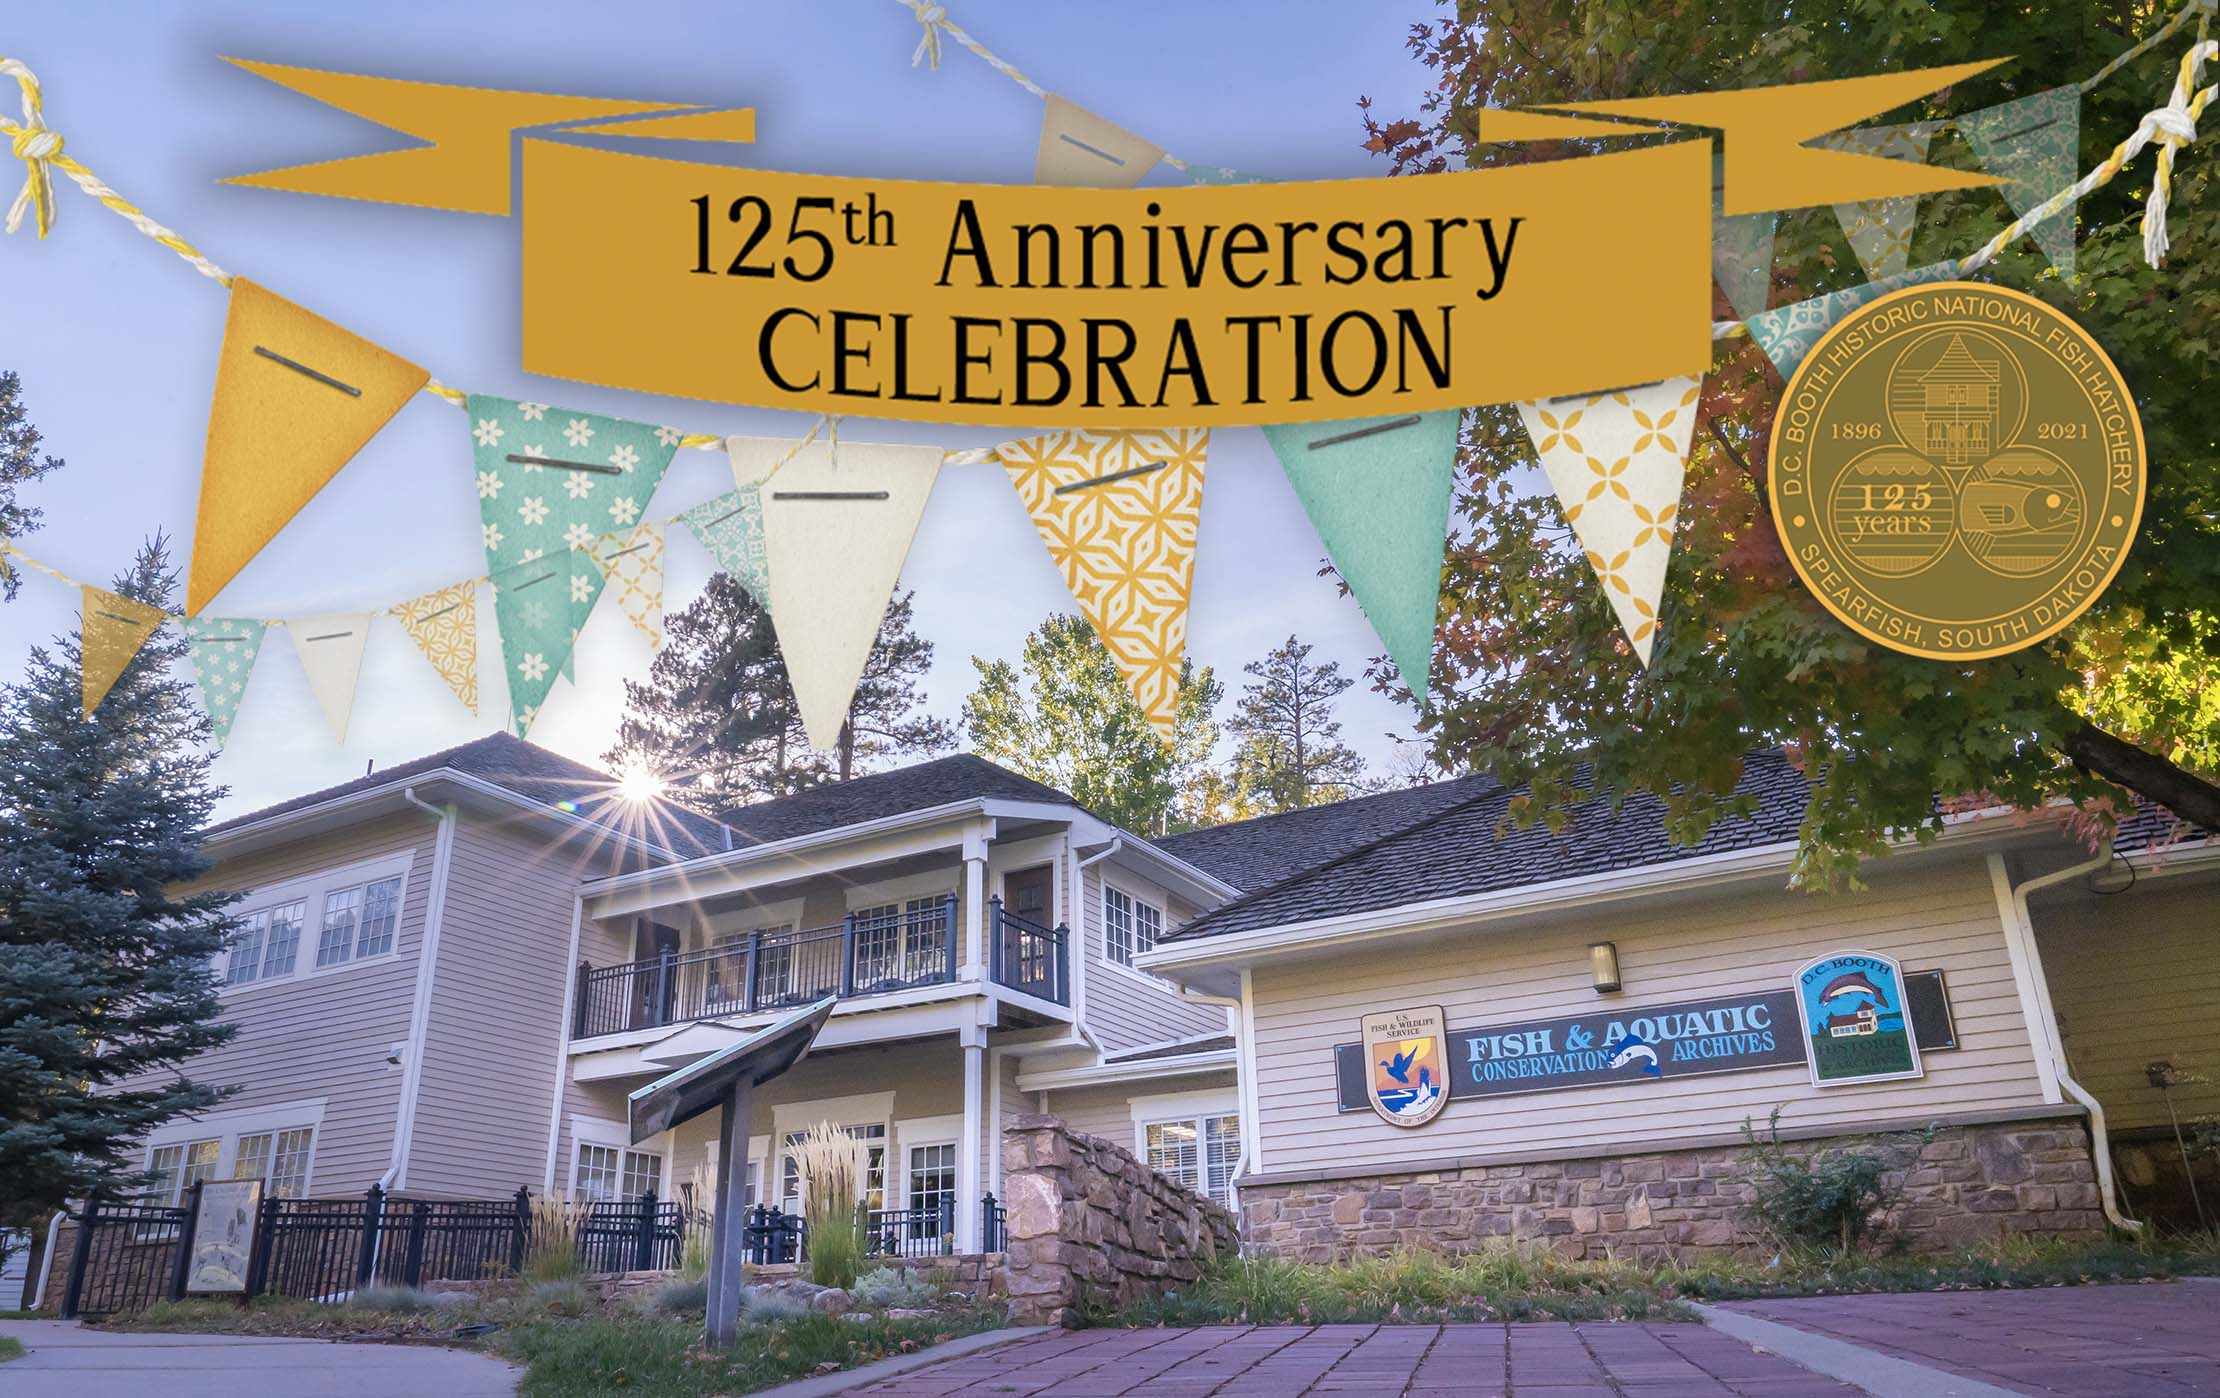 125th Anniversary Celebration photo of conservation building